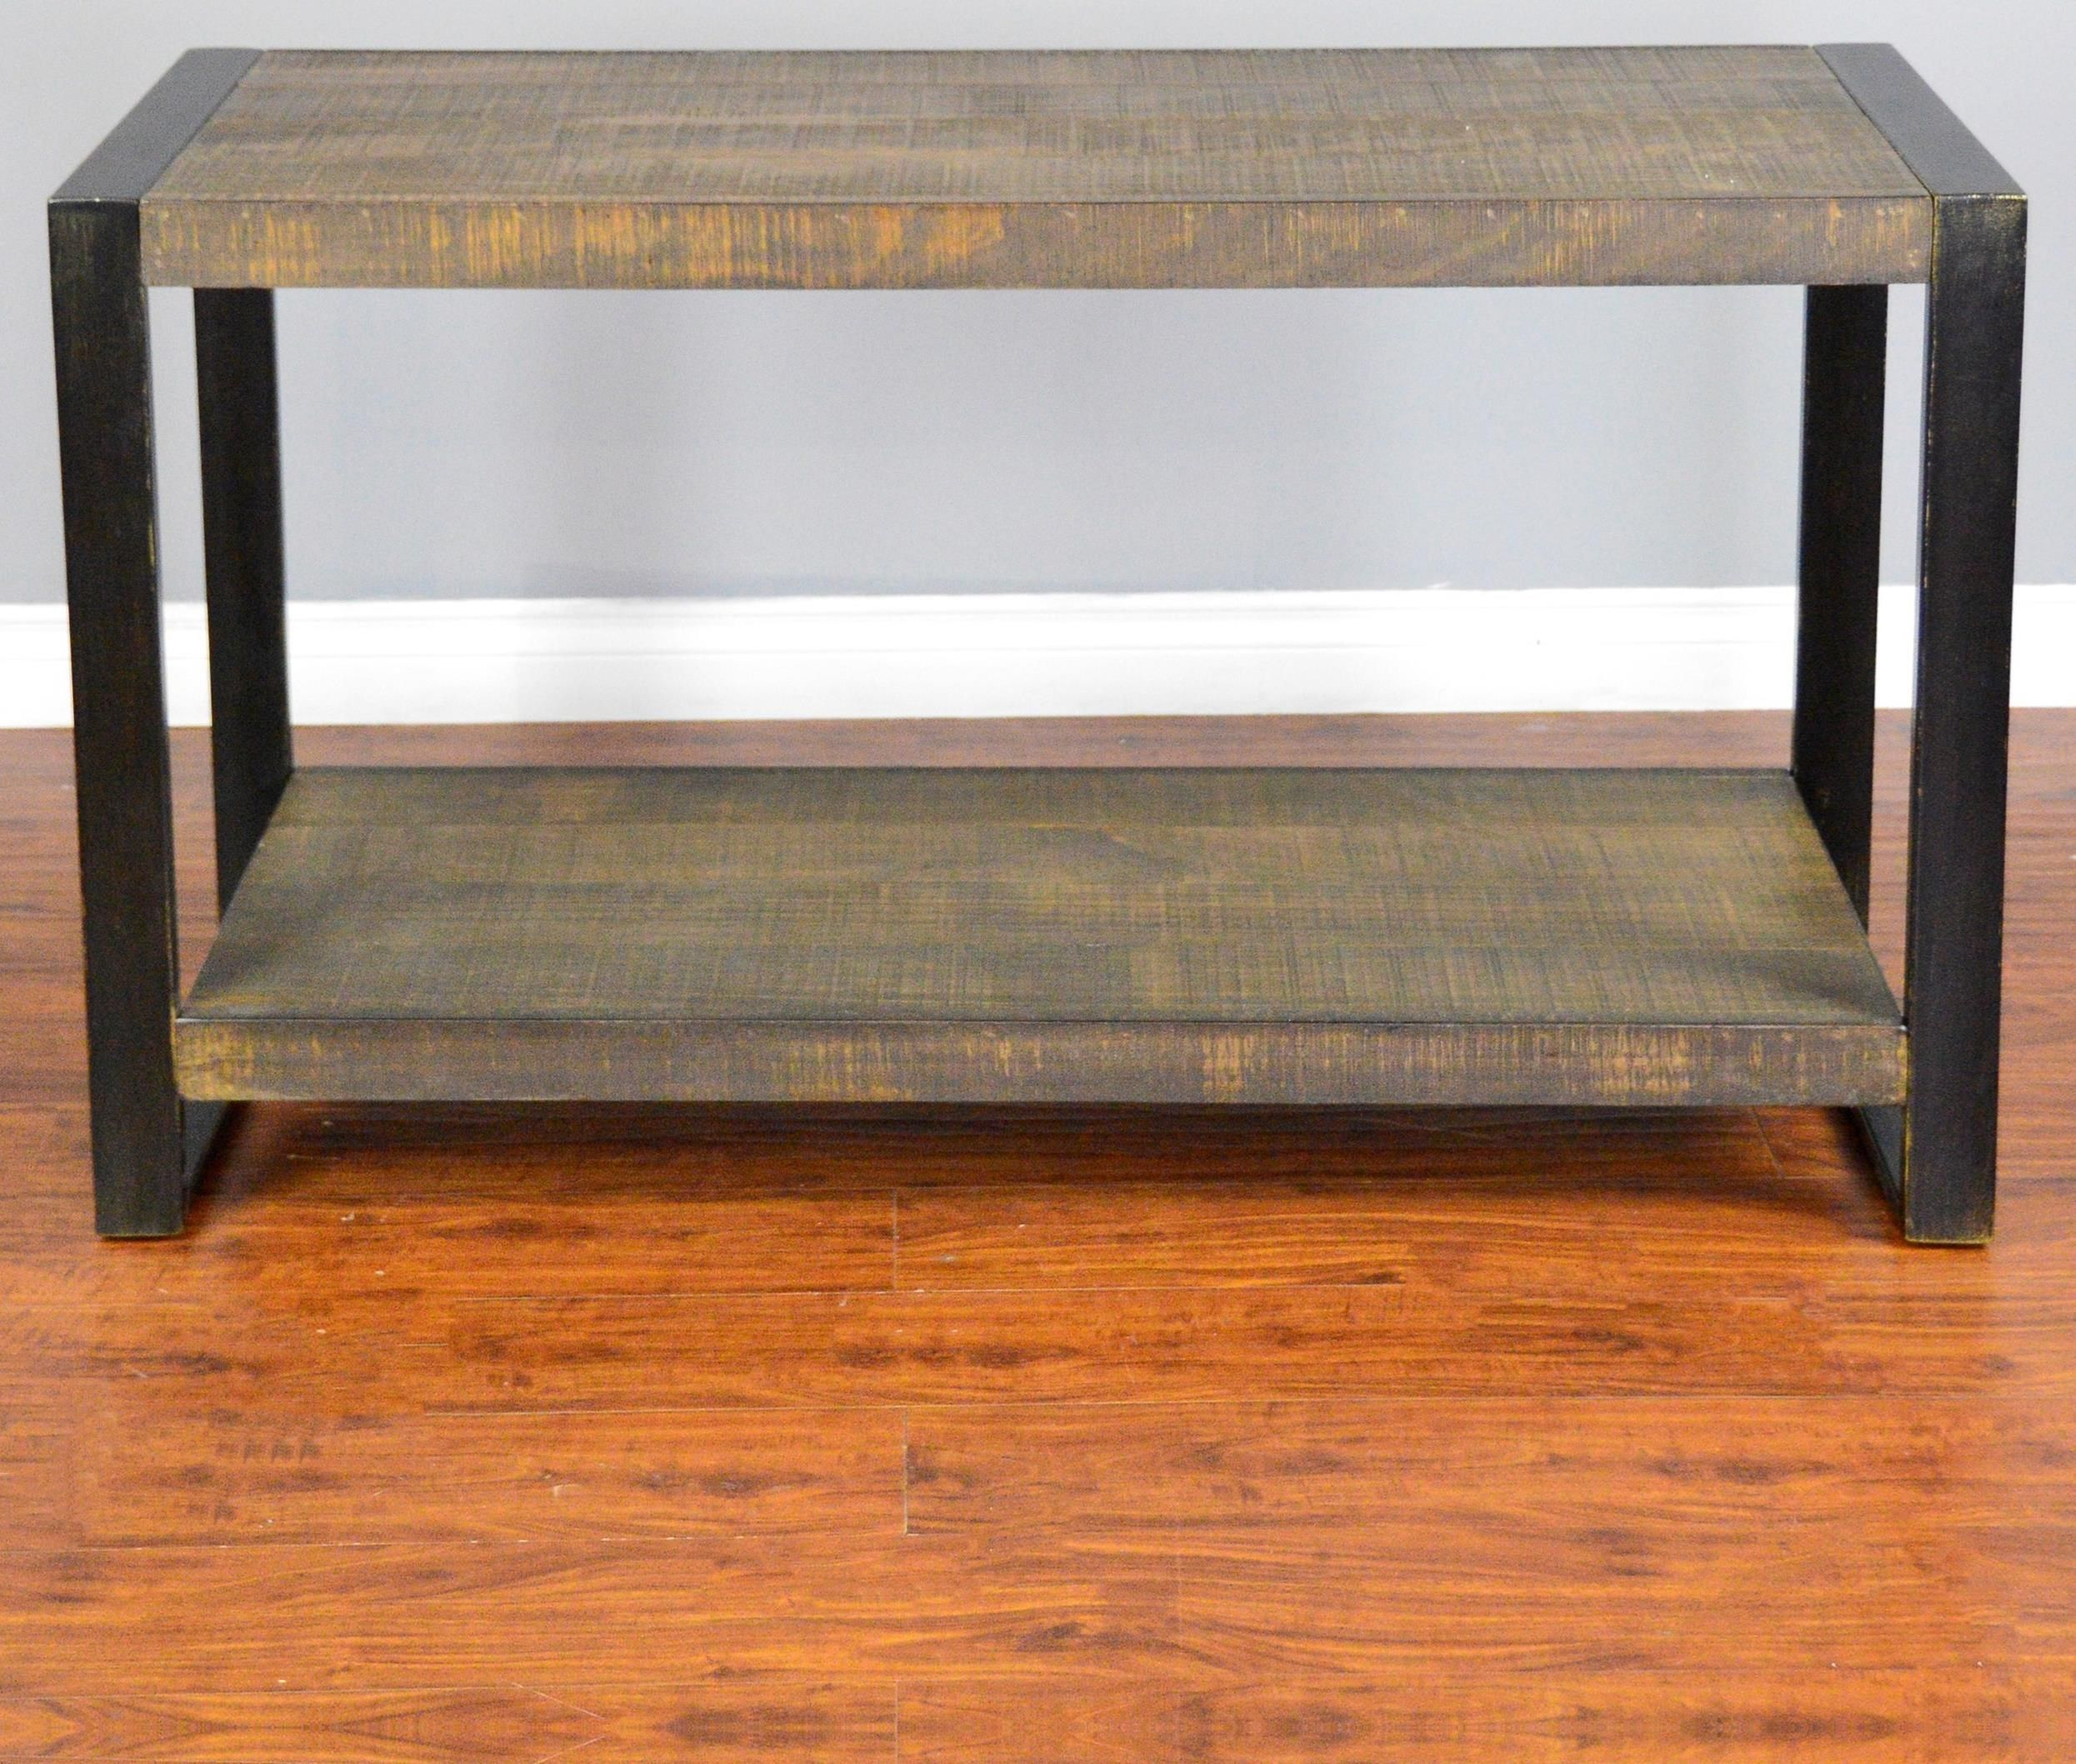 Durham sofa console table by sunny designs at virginia furniture durham sofa console table by sunny designs at virginia furniture market geotapseo Images